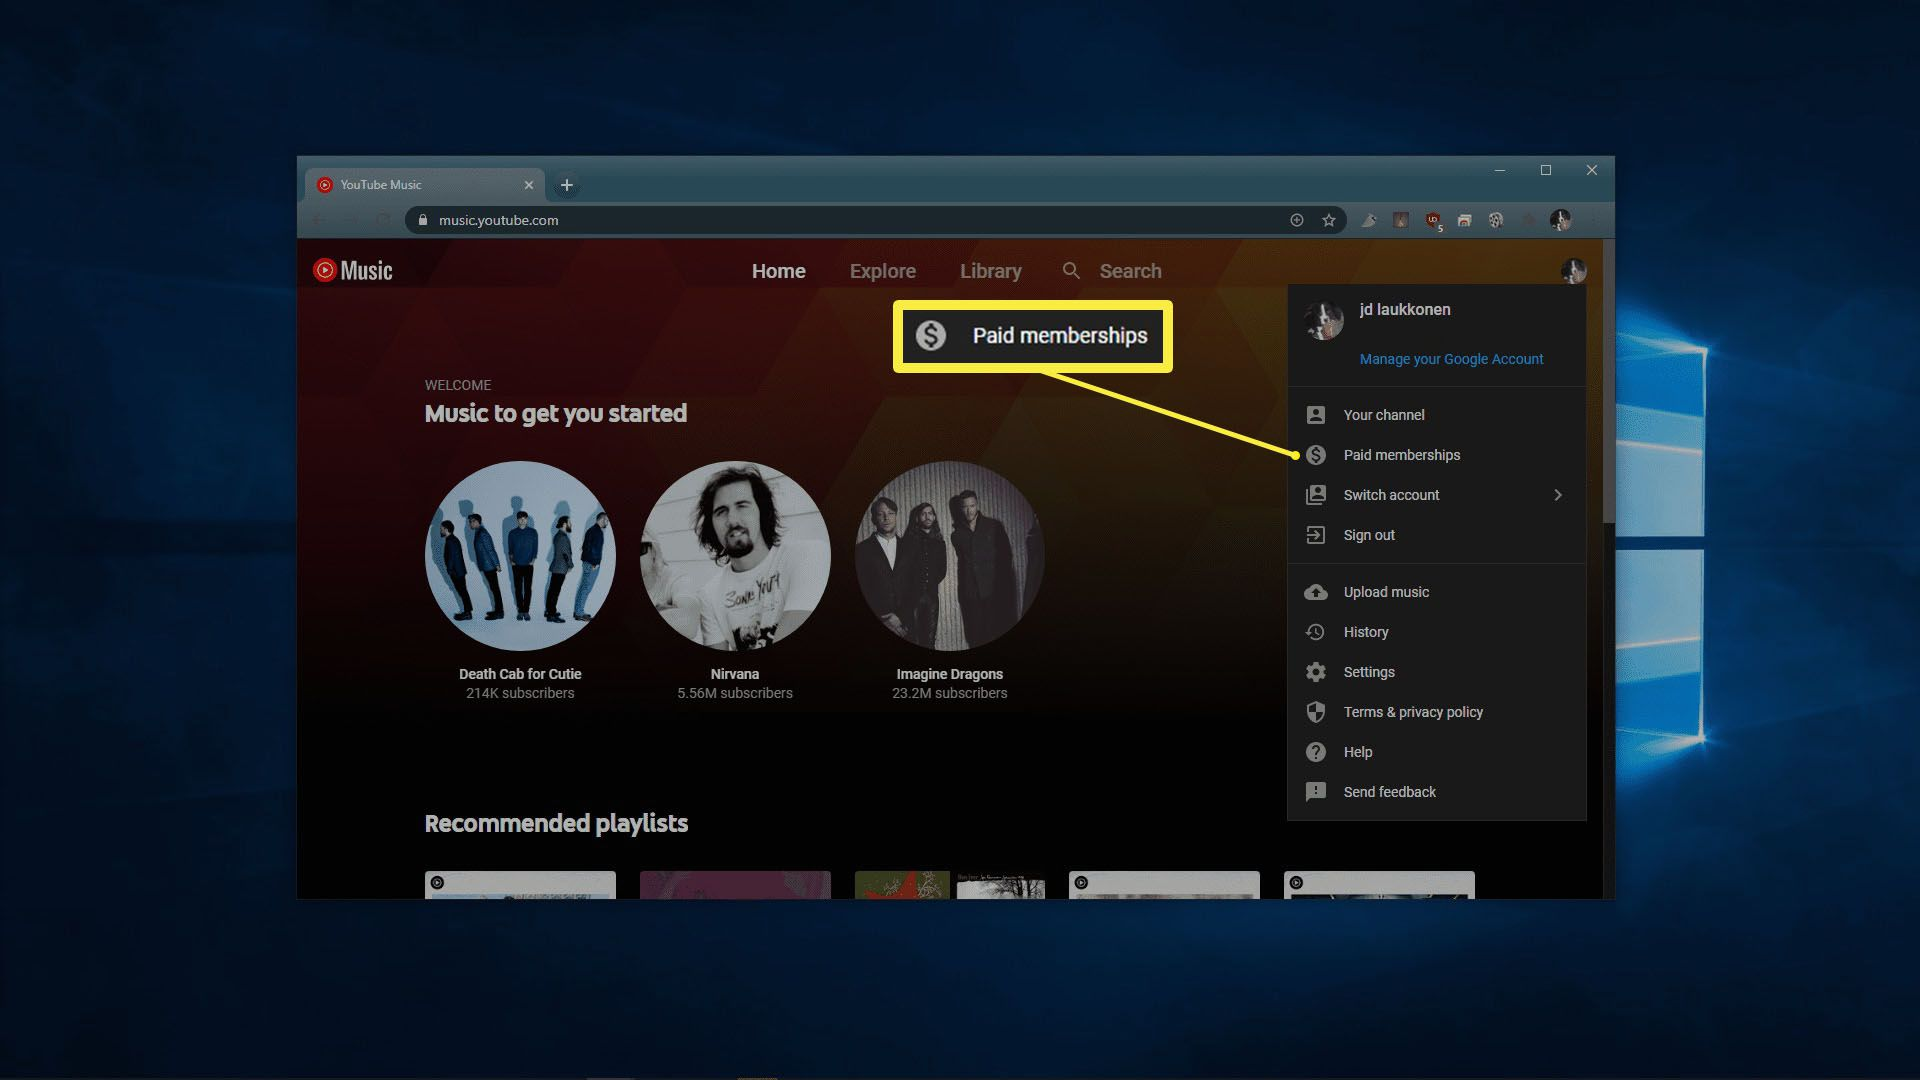 A view of the YouTube Music account menu.